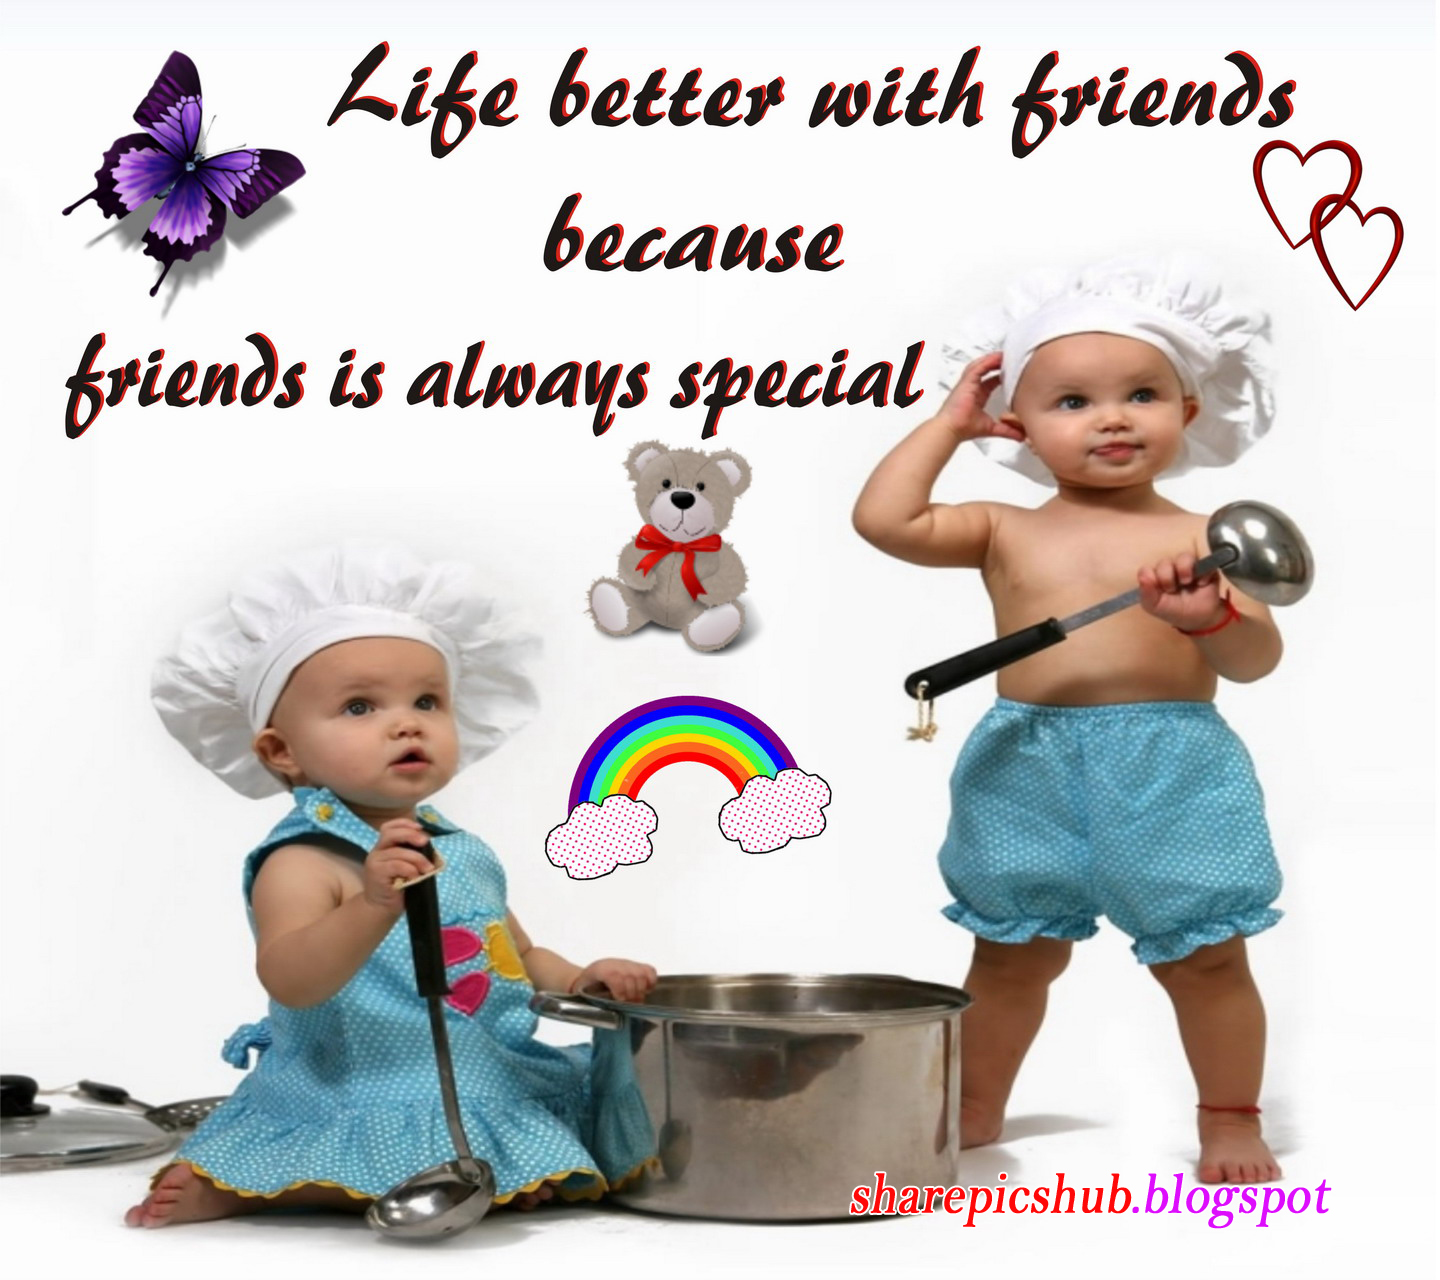 ... beautiful friendship greeting card for facebook friendship quotes